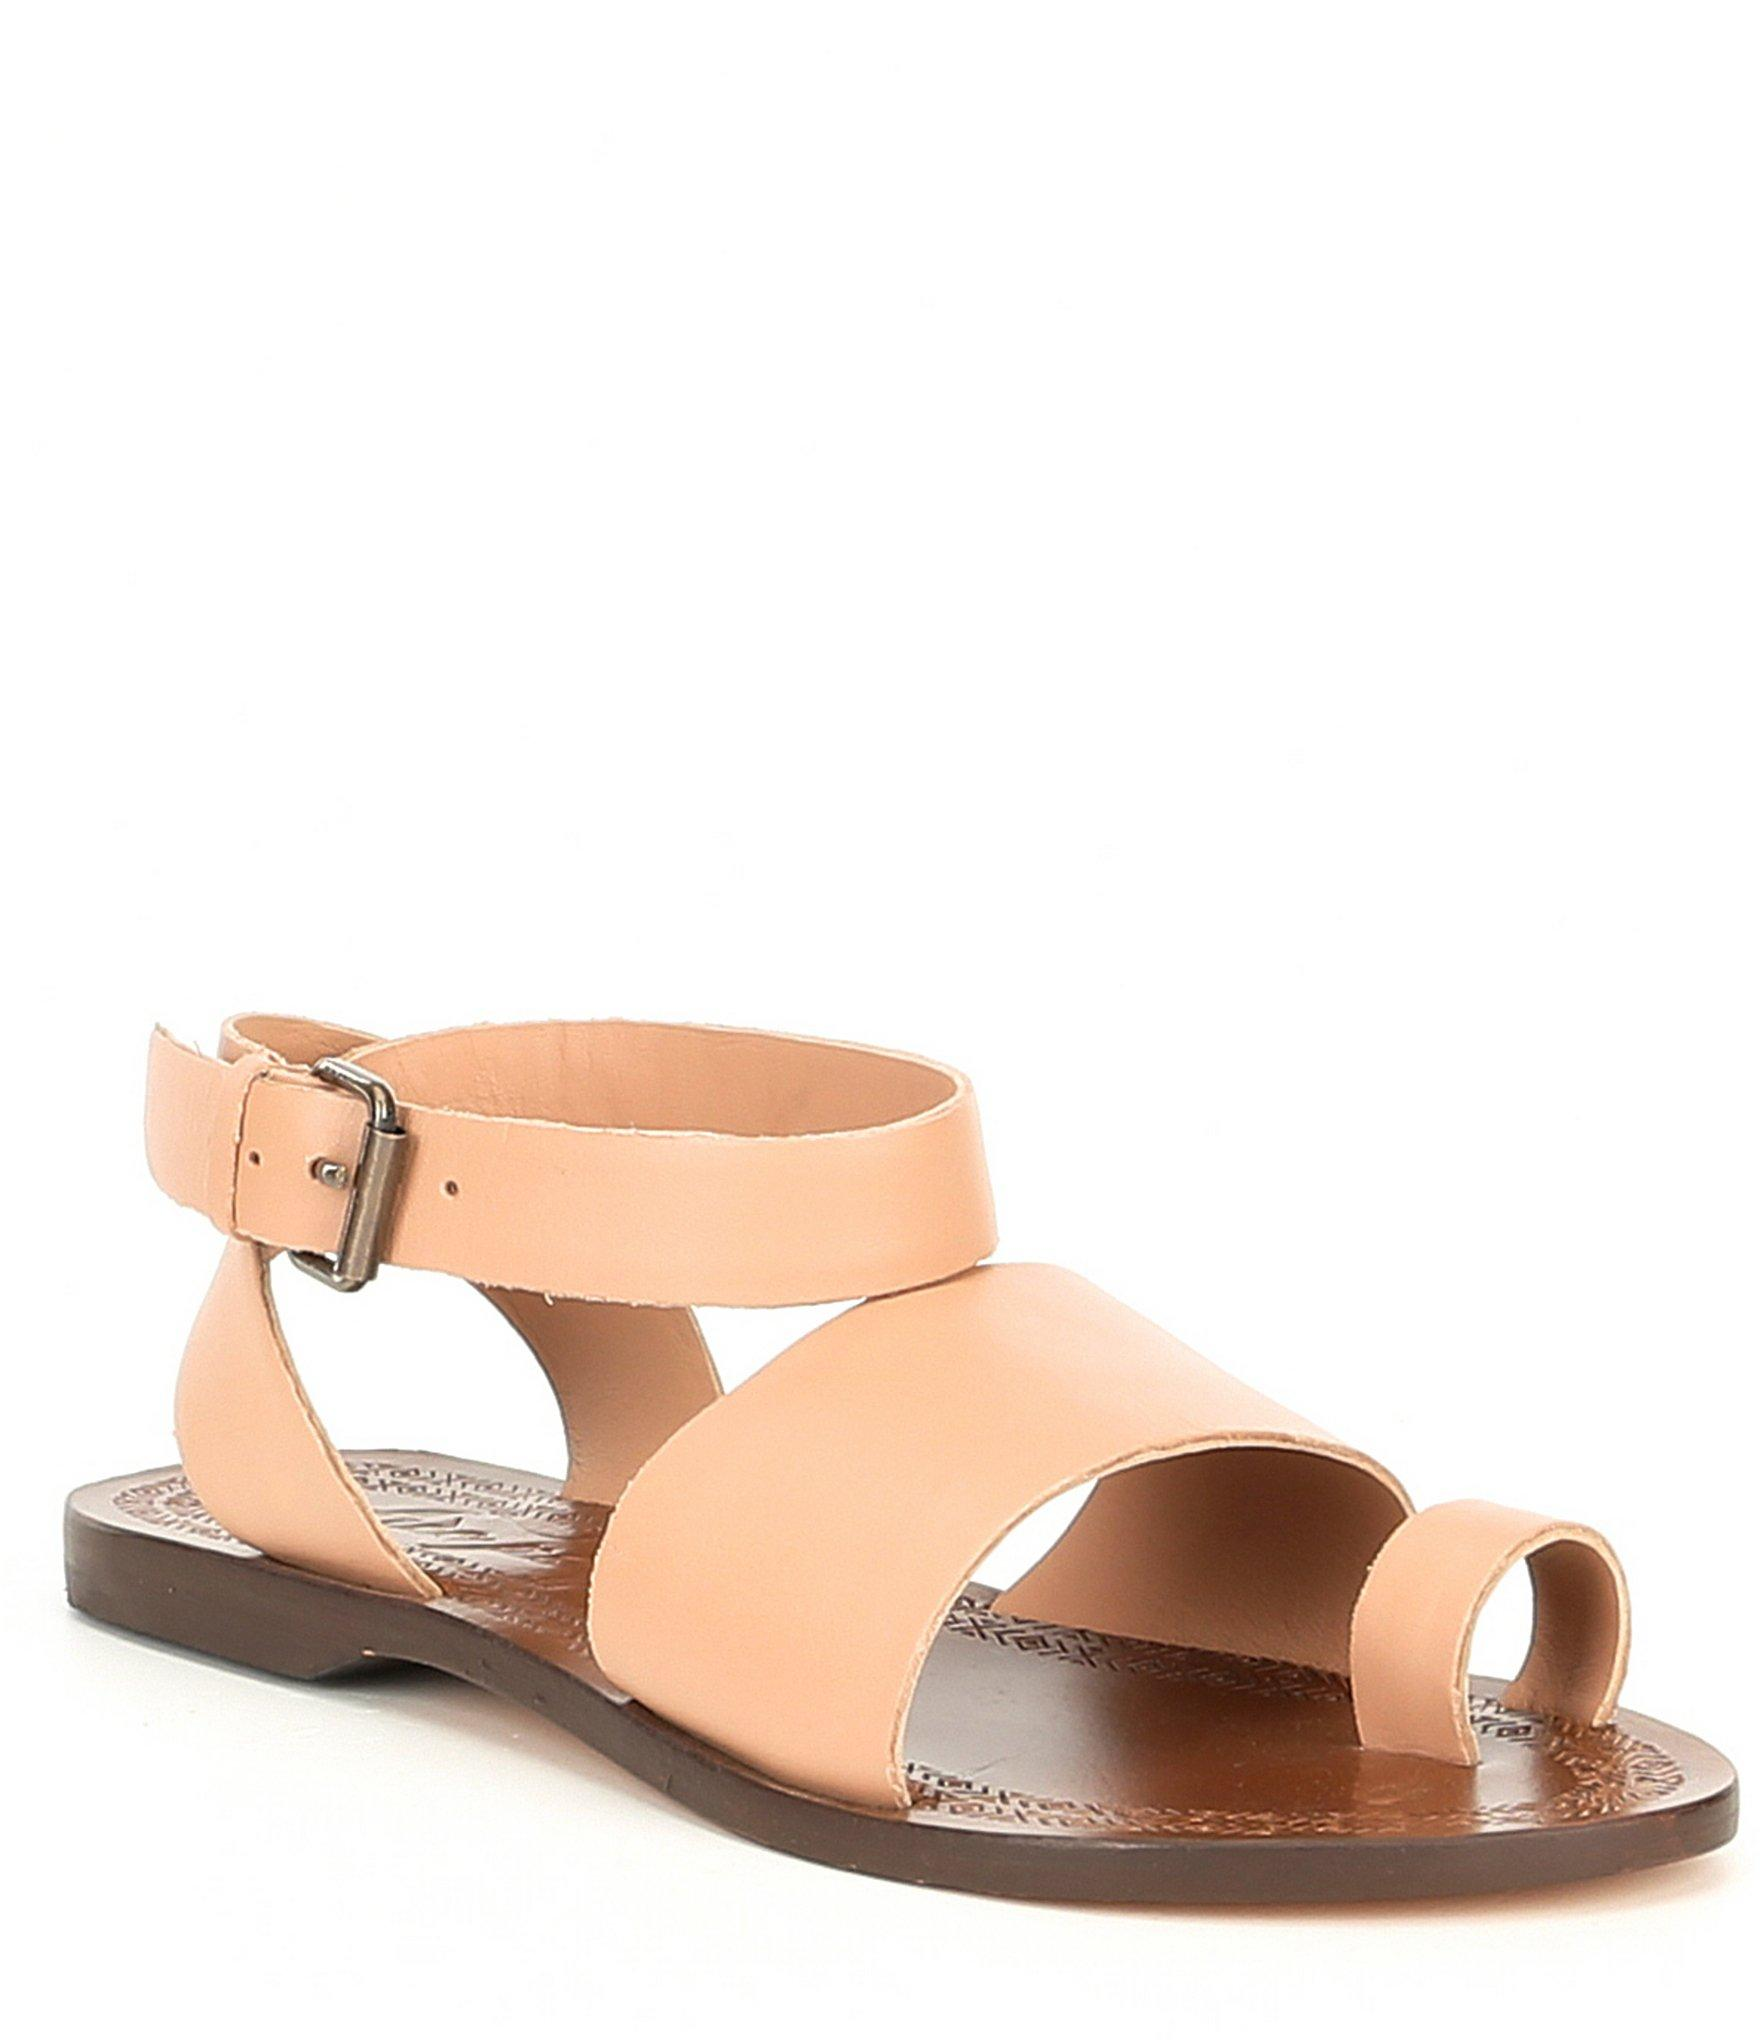 d112dea84c7792 Lyst - Free People Torrence Toe Ring Leather Sandals in Pink